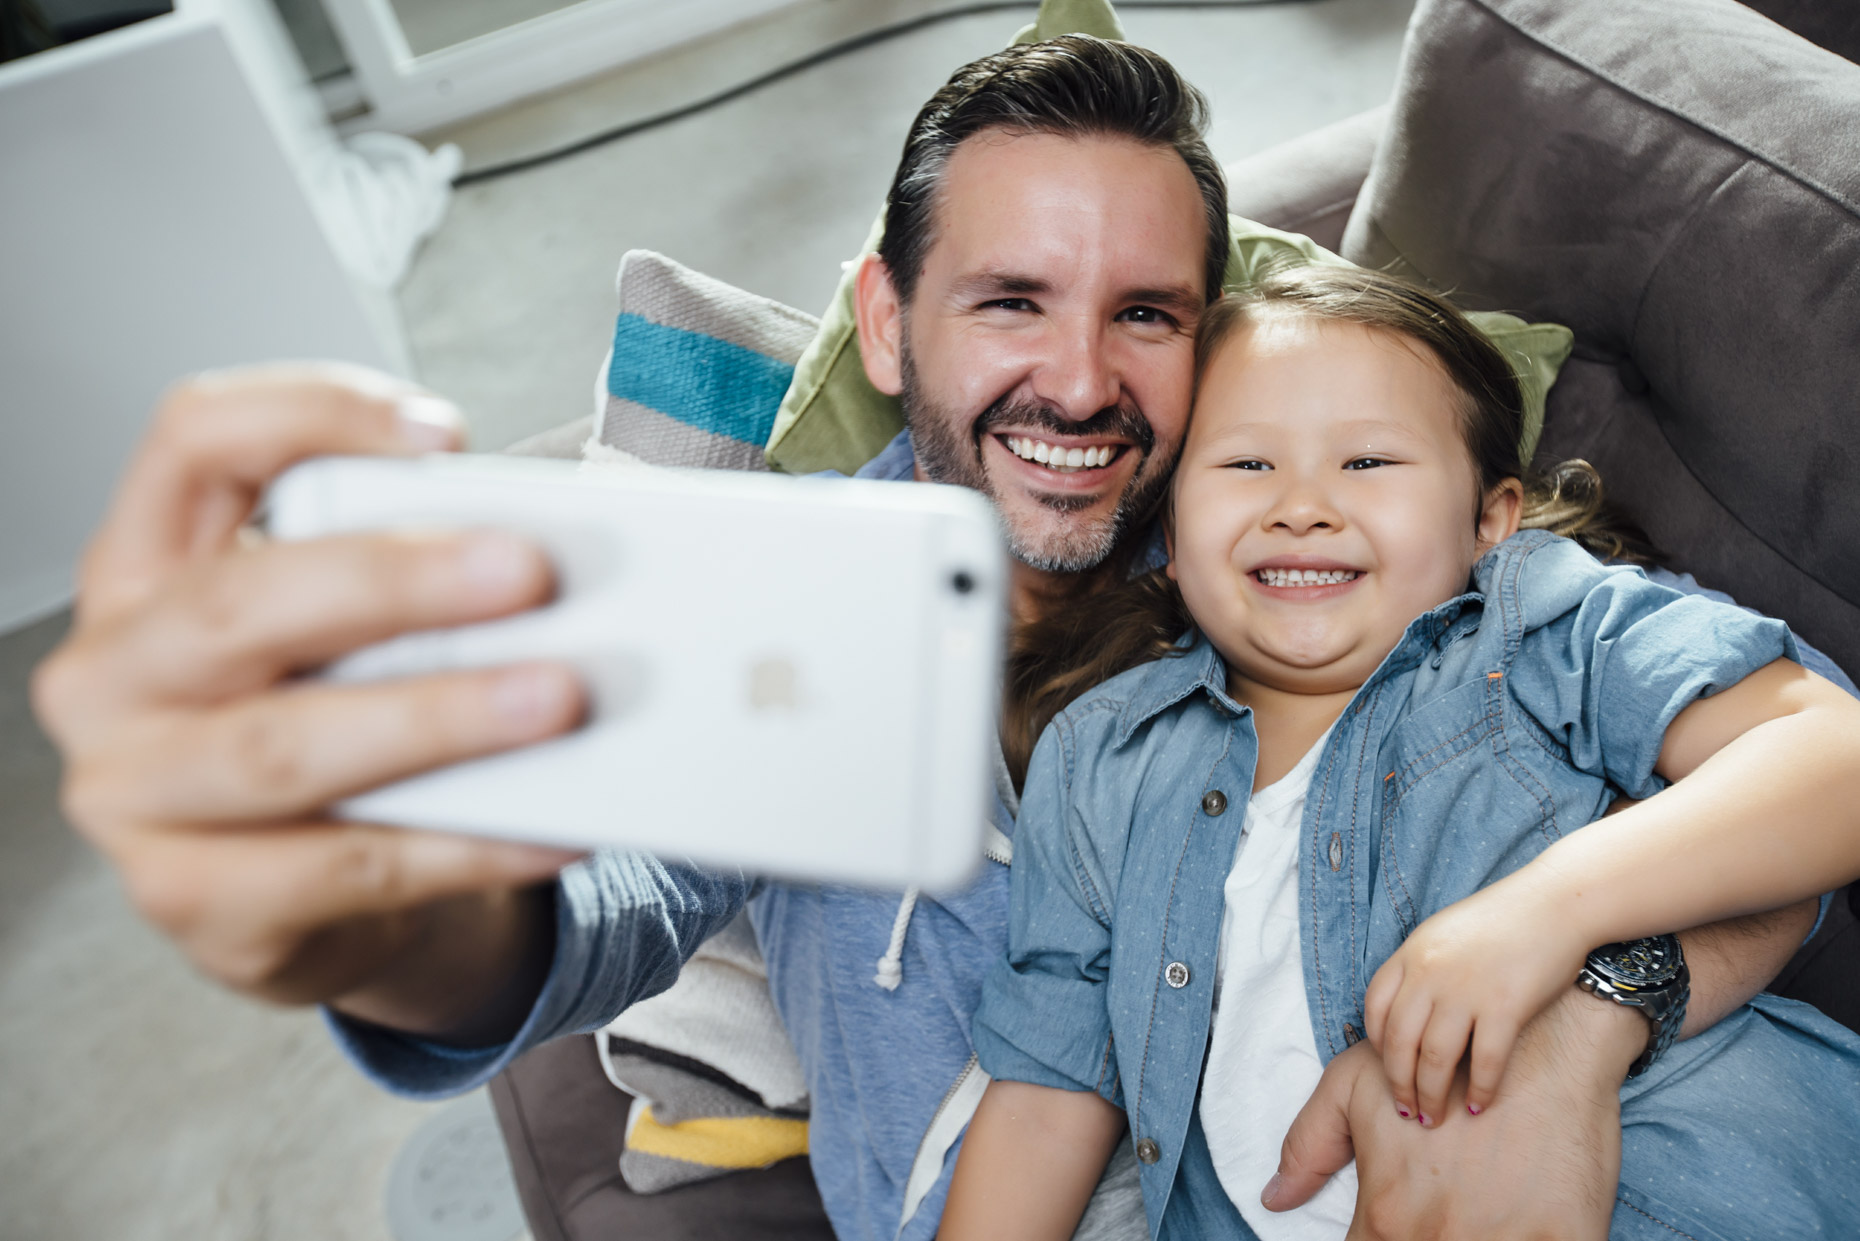 Dad taking cell phone selfie with daughter